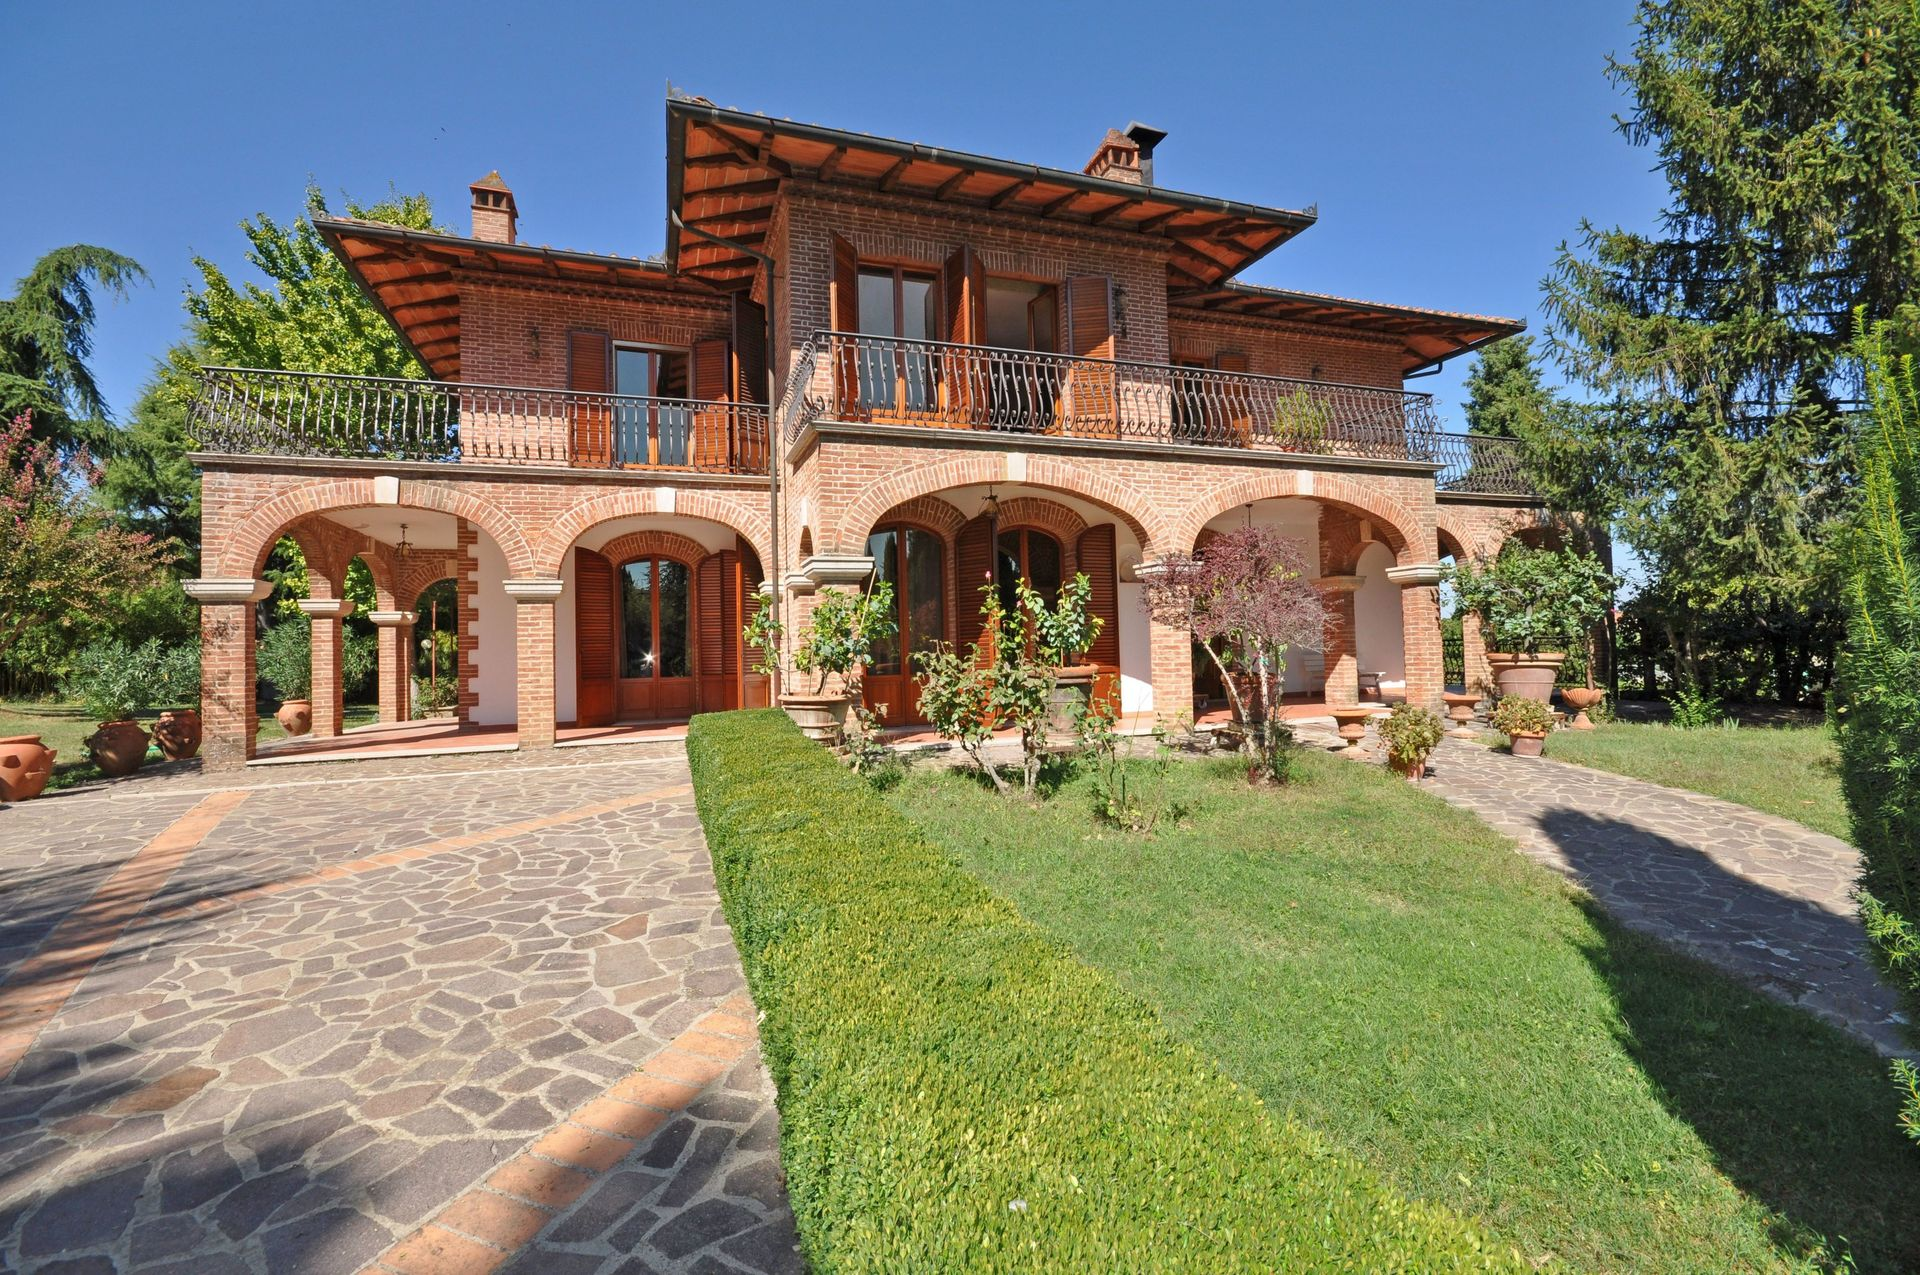 Villas Near Siena Italy villa lauretana: villa that sleeps 12 people in 6 bedrooms